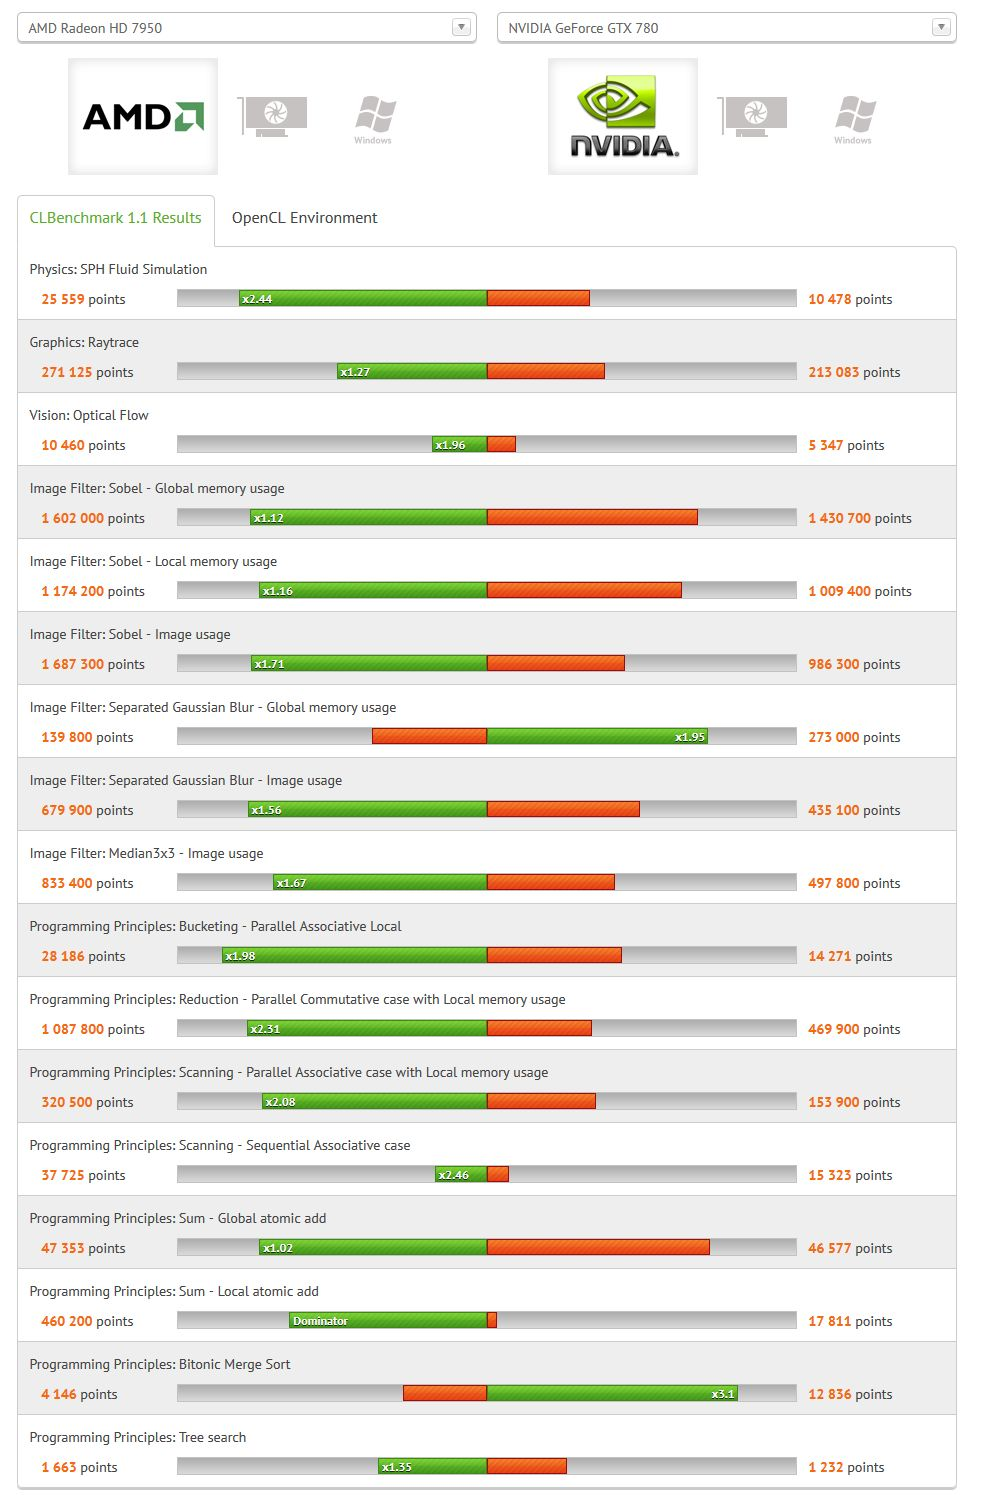 CLBenchmark Radeon HD 7950 vs GeForce GTX 780